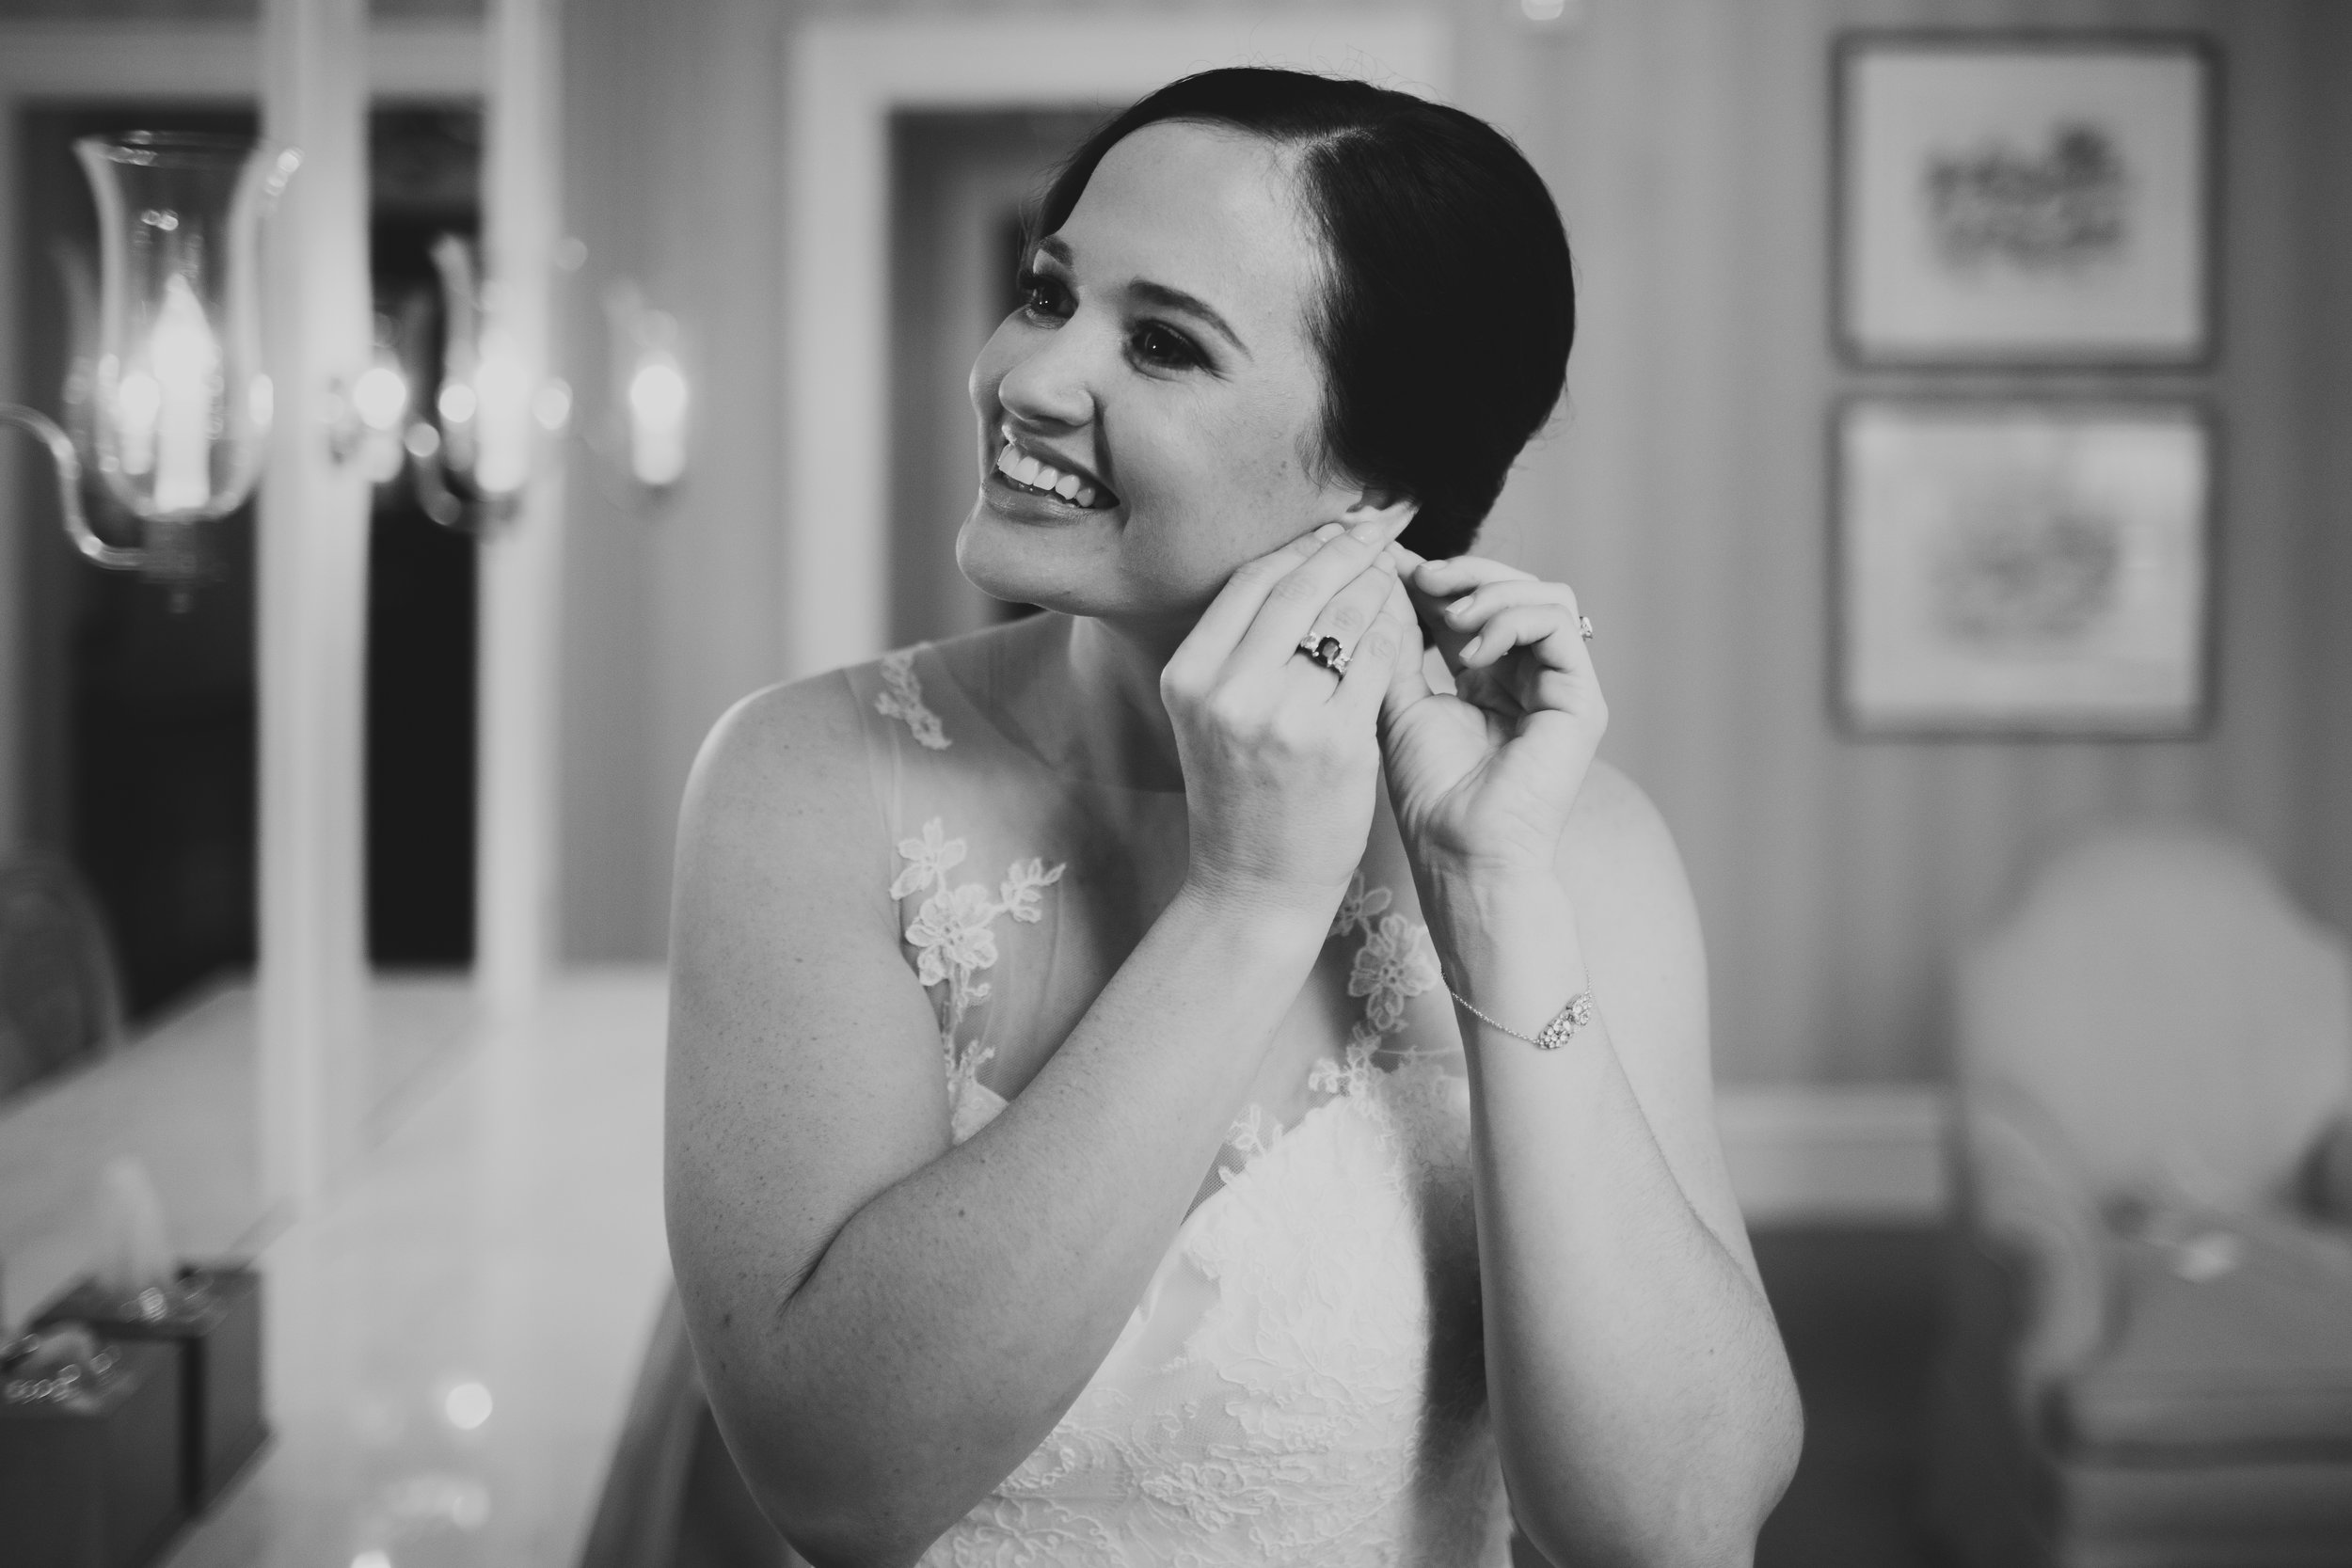 CooksonWedding - Alicia White Photography-79.jpg